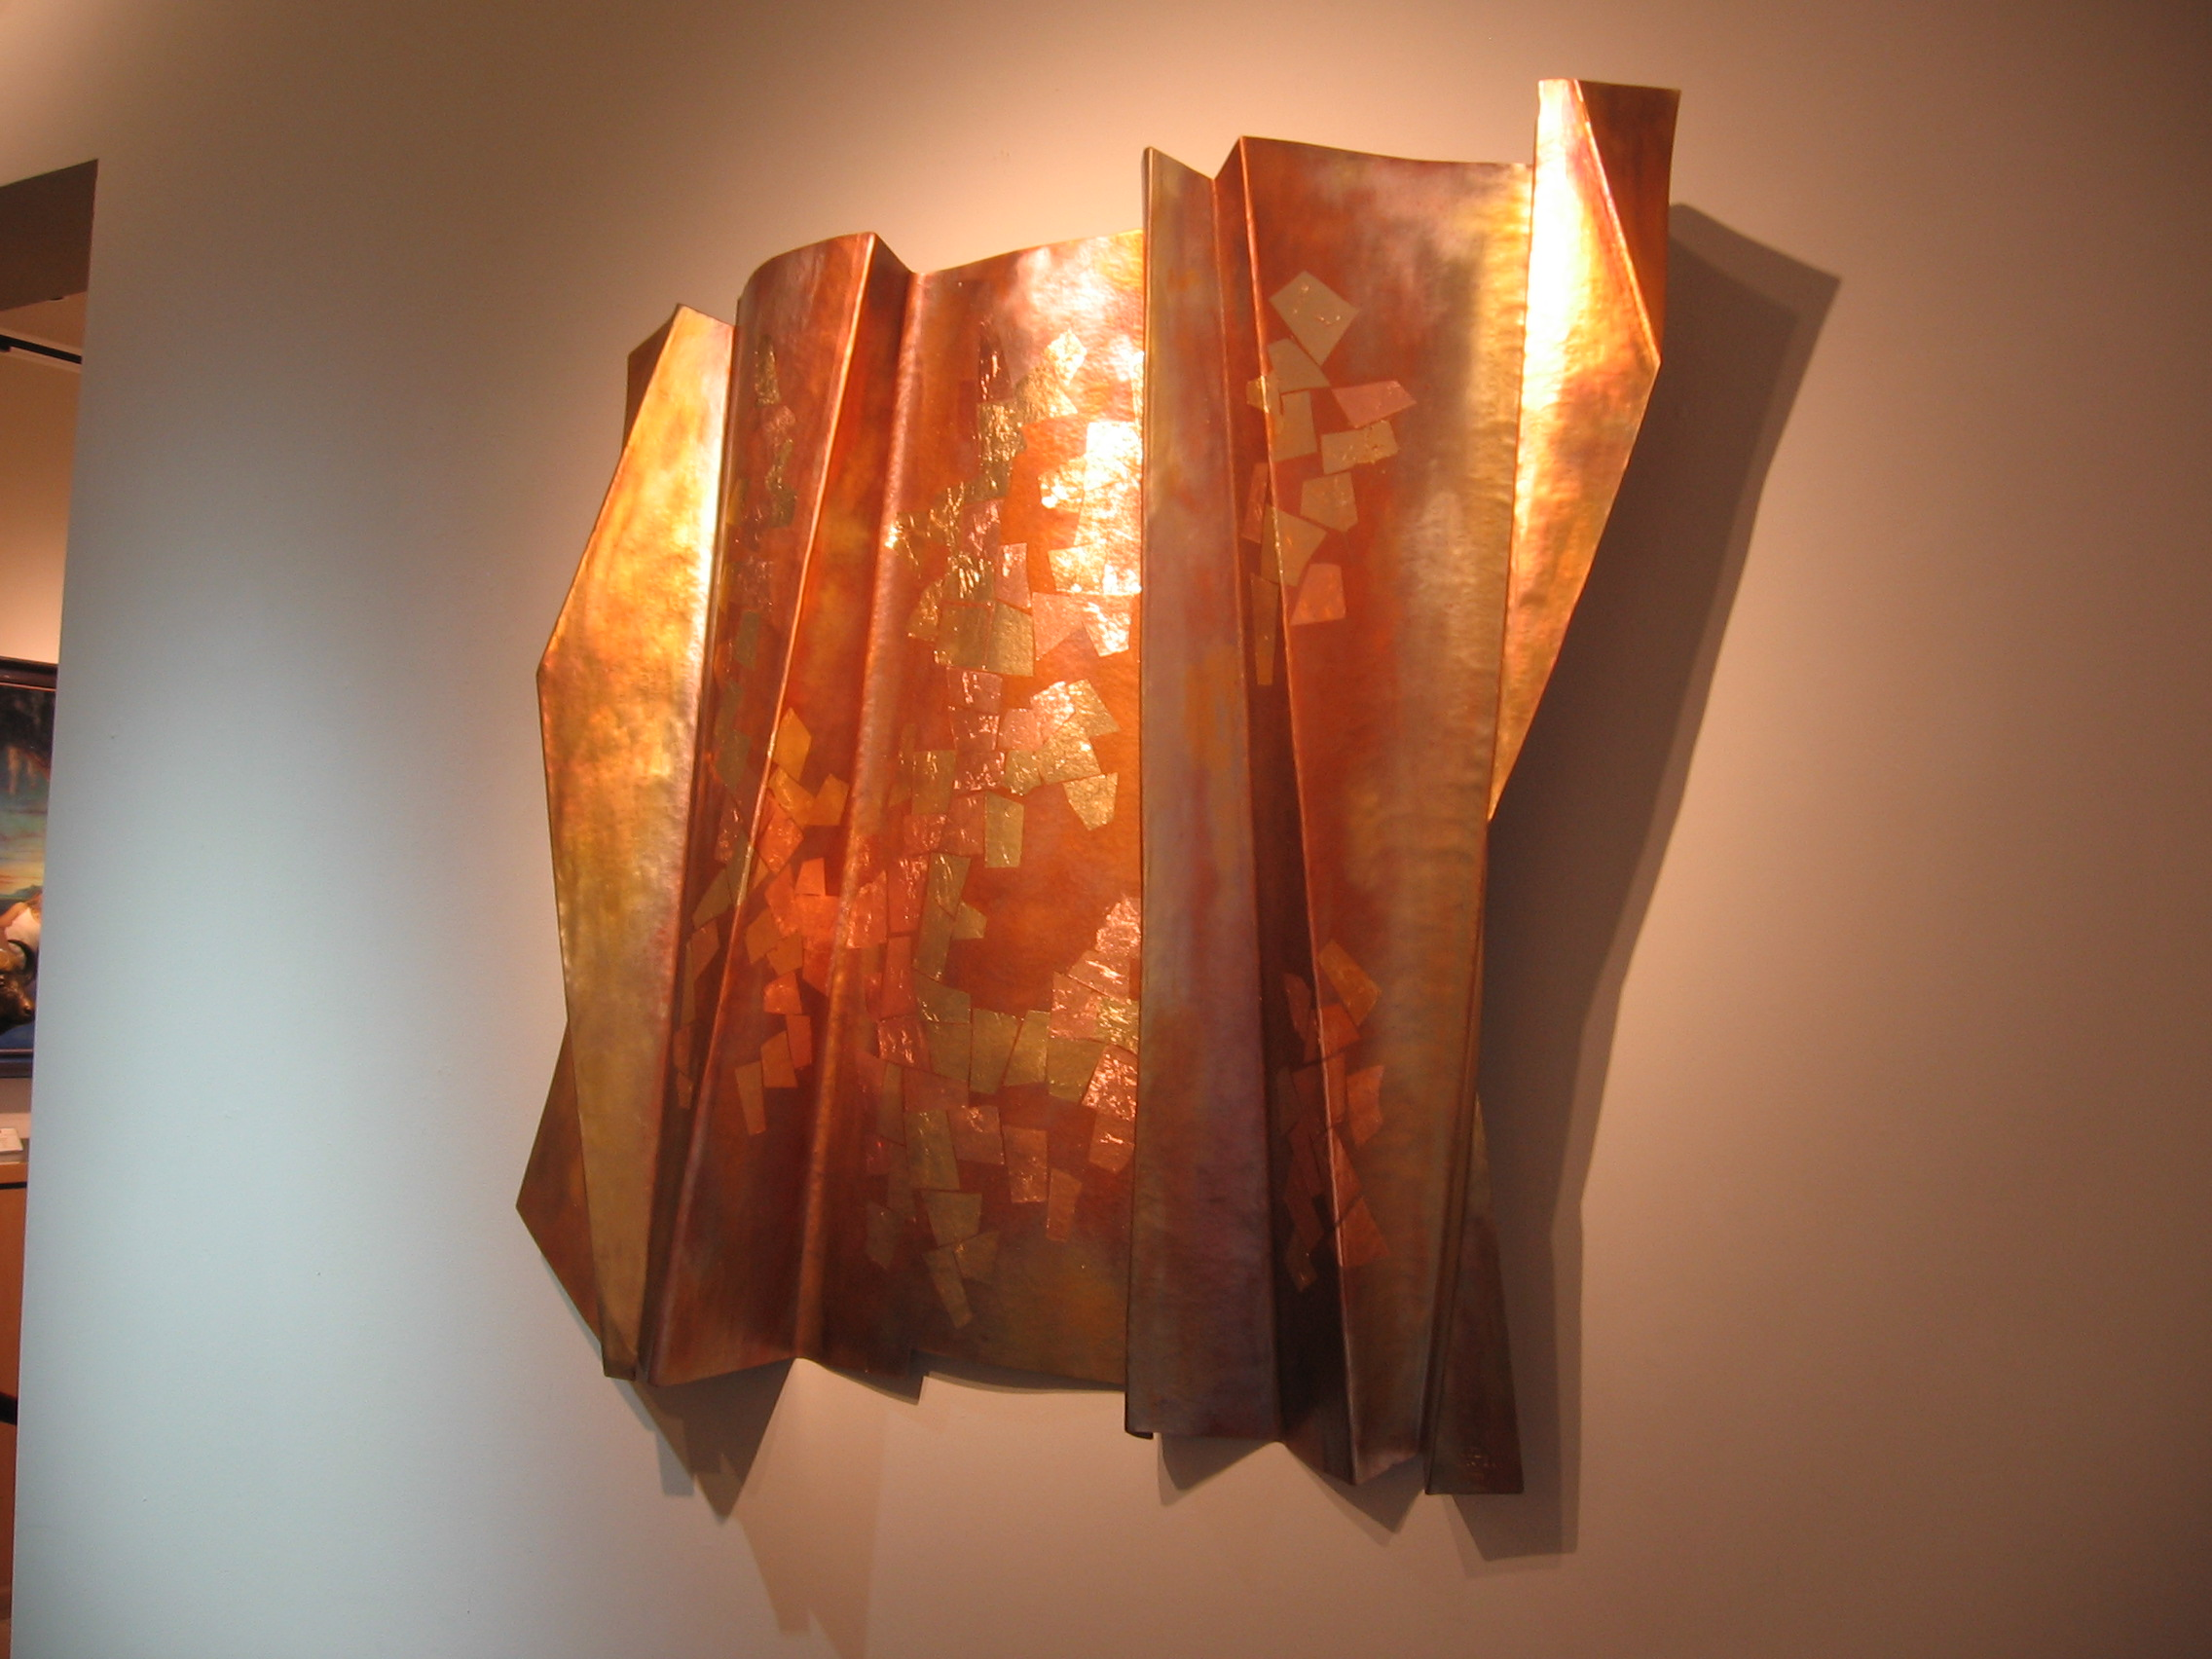 Thomas Markusen Copper Art At A Scottsdale Art Gallery